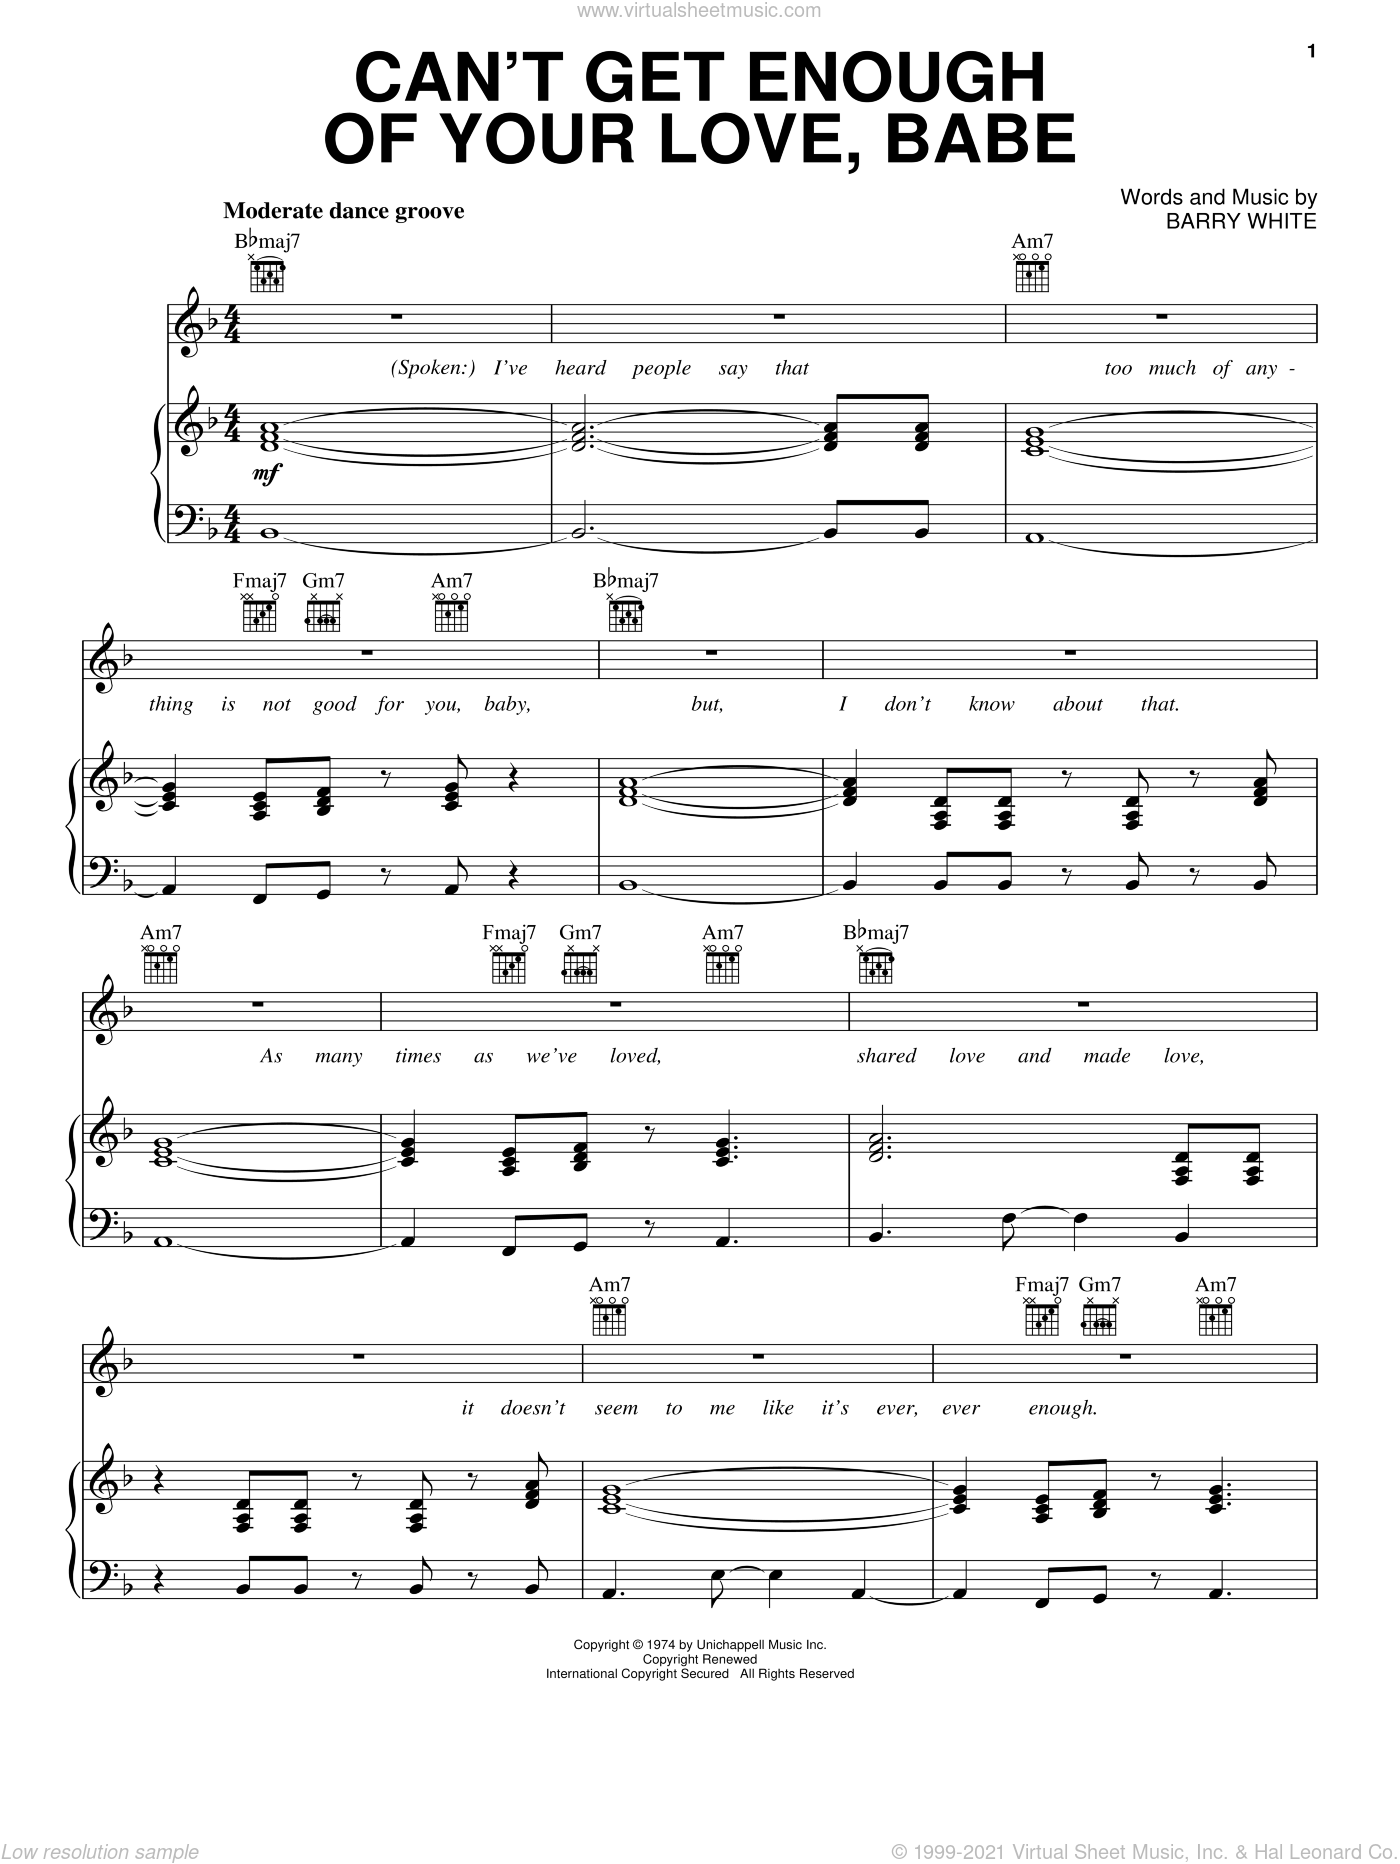 Can't Get Enough Of Your Love, Babe sheet music for voice, piano or guitar by Barry White, intermediate skill level